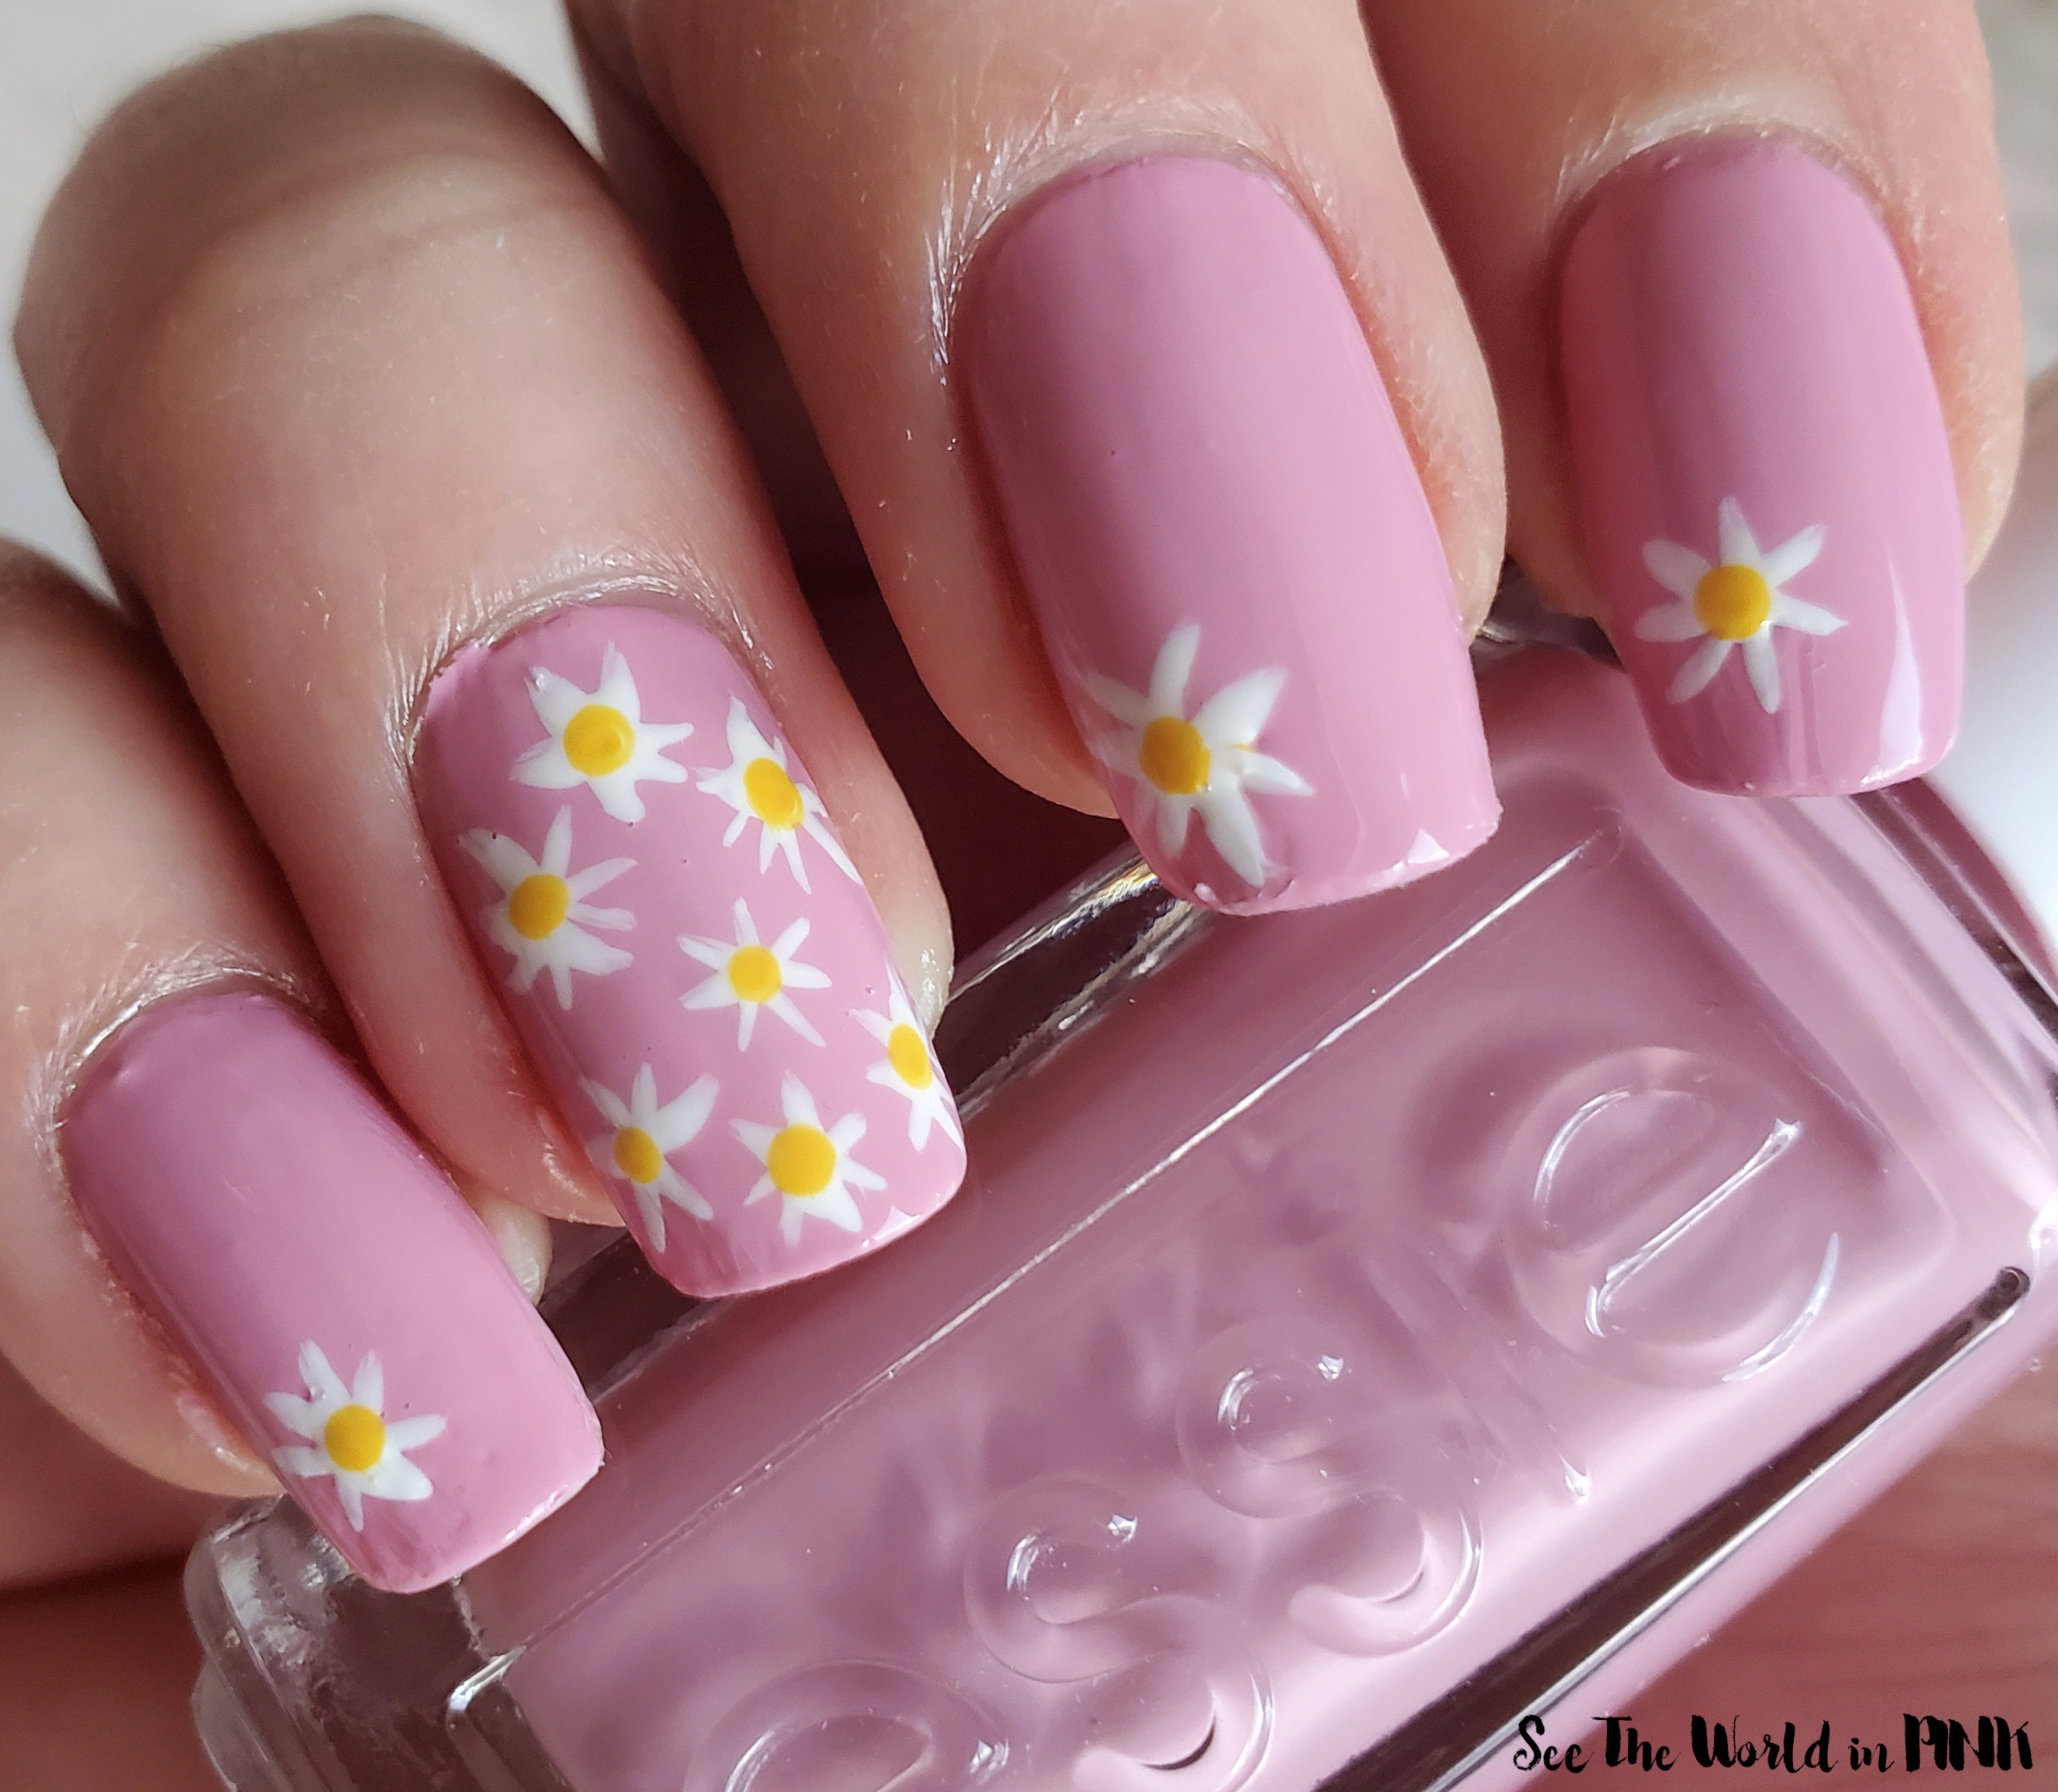 Manicure Monday - Mini Daisy Nails